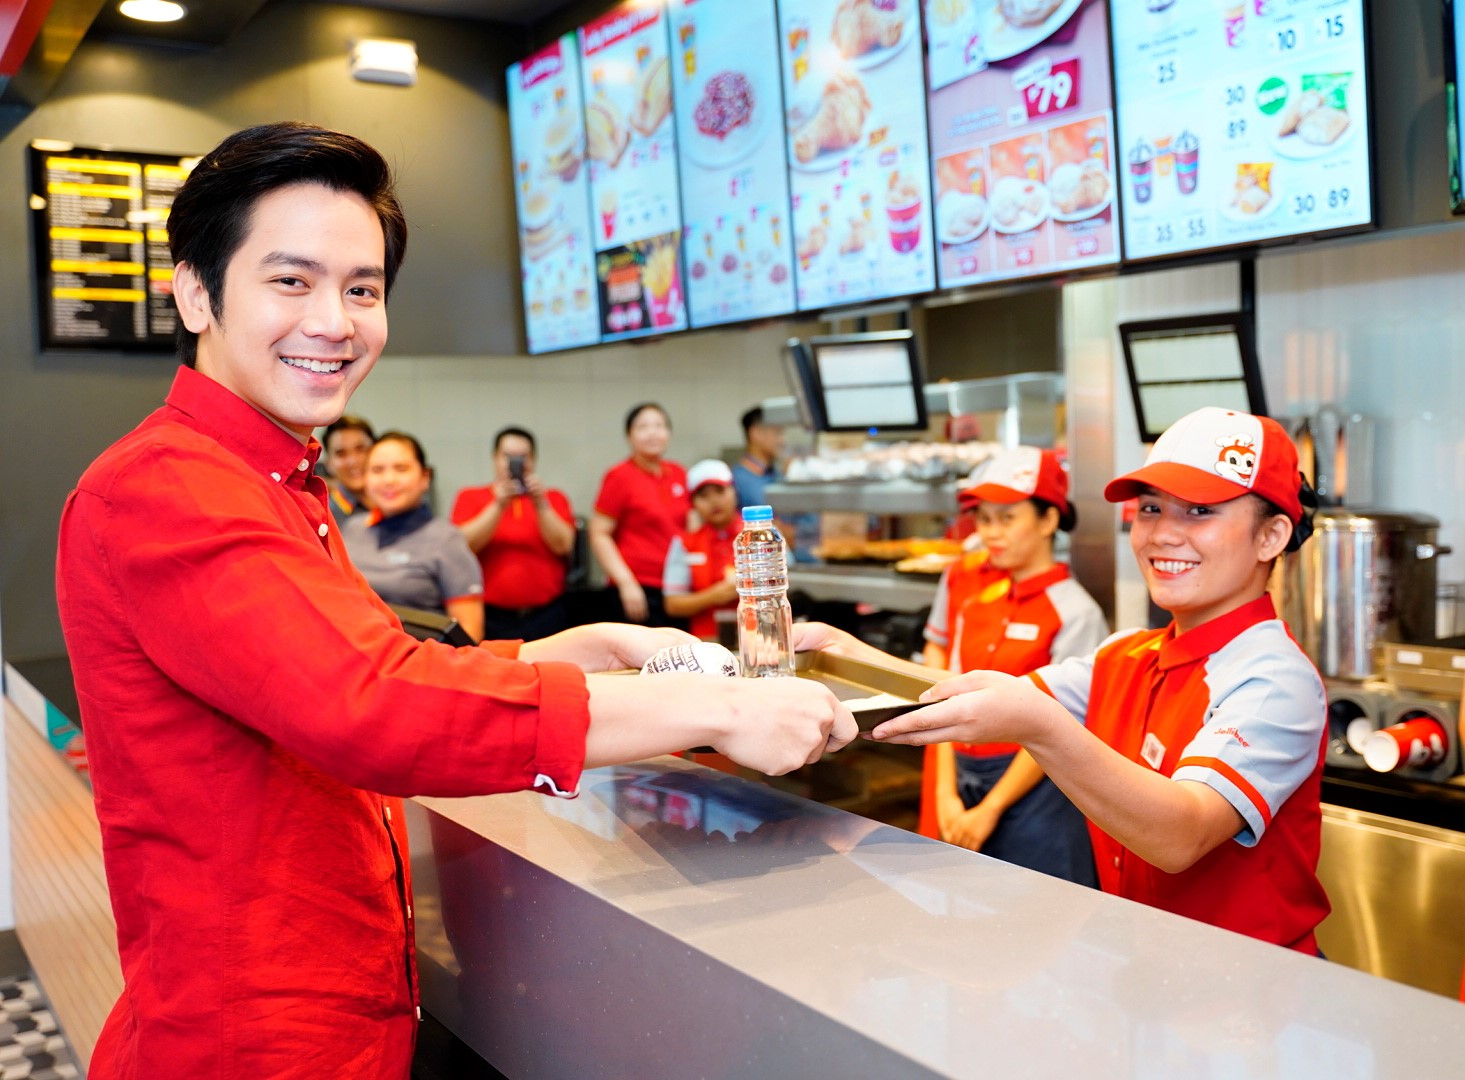 JOLLIBEE FAVORITES. Joshua Garcia gets his order of Bacon Cheesy Yumburger at the claim area of the Level Up Joy Store. All photos courtesy of Jollibee.